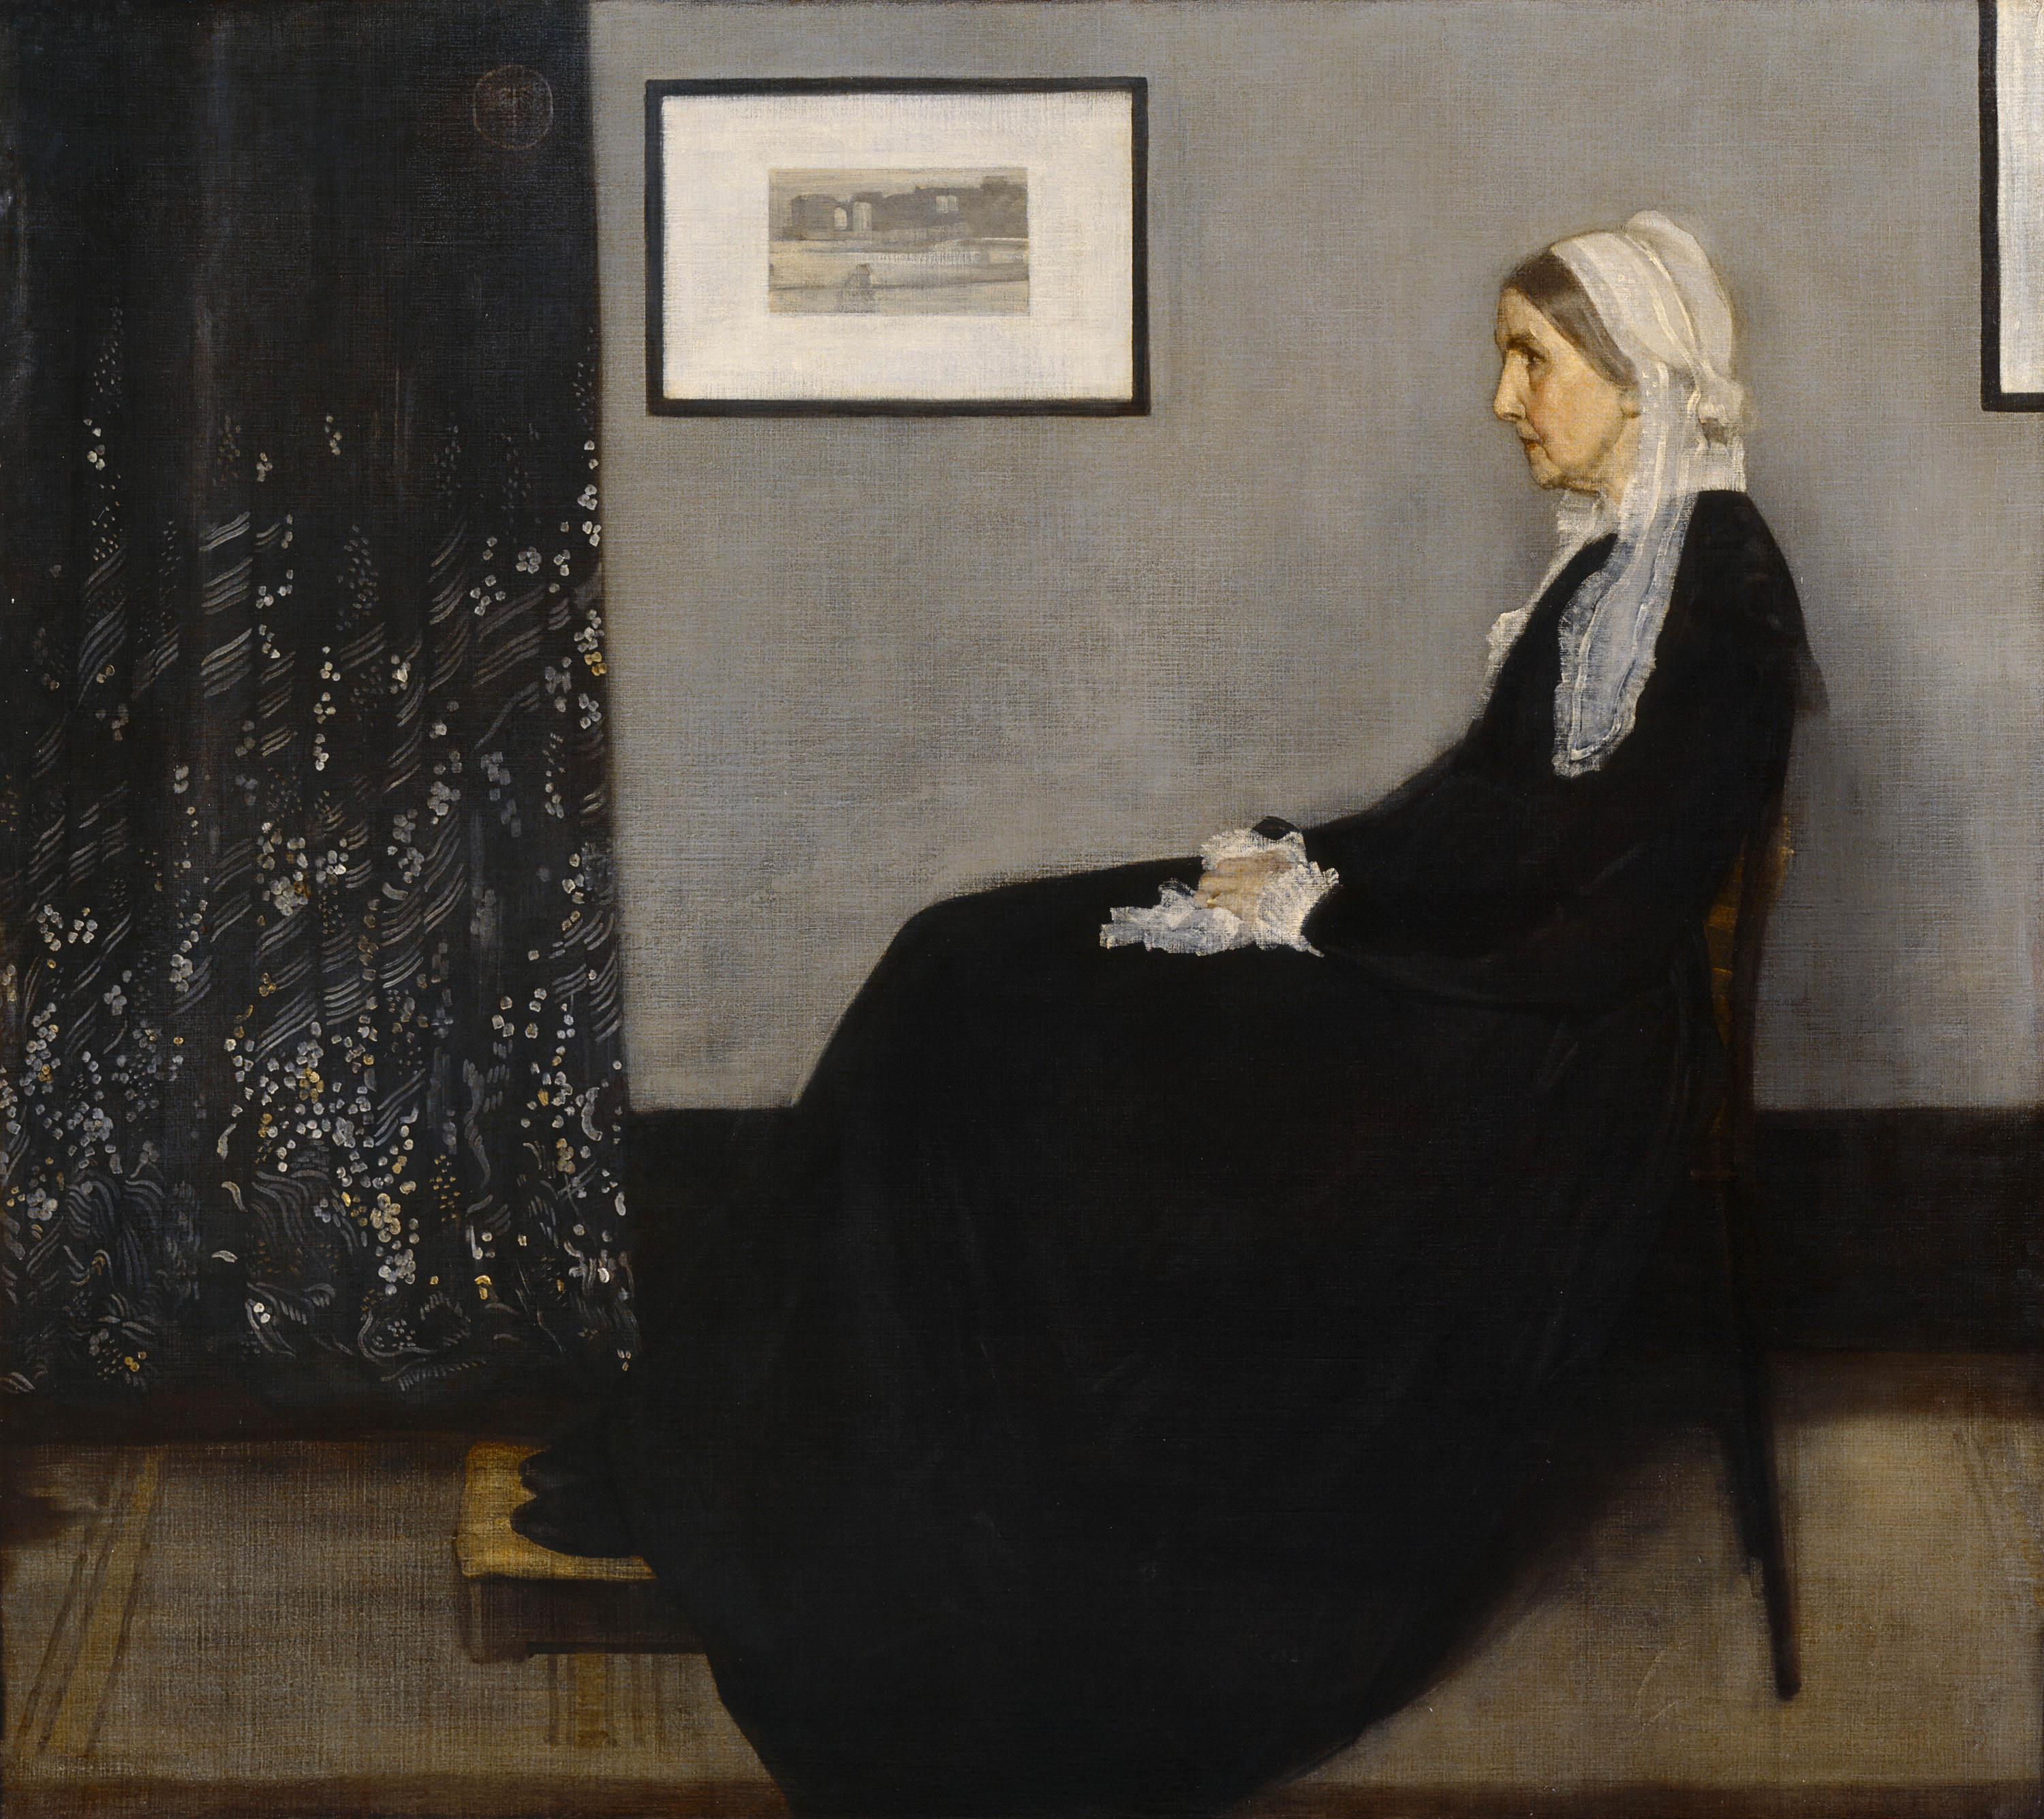 James McNeill Whistler American 1834–1903, worked in France 1855–59, England 1859–1903, Arrangement in grey and black no. 1 (Portrait of the artist's mother) 1871 oil on canvas. 144.3 x 162.5 cm Musée d'Orsay, Paris (RF 699)